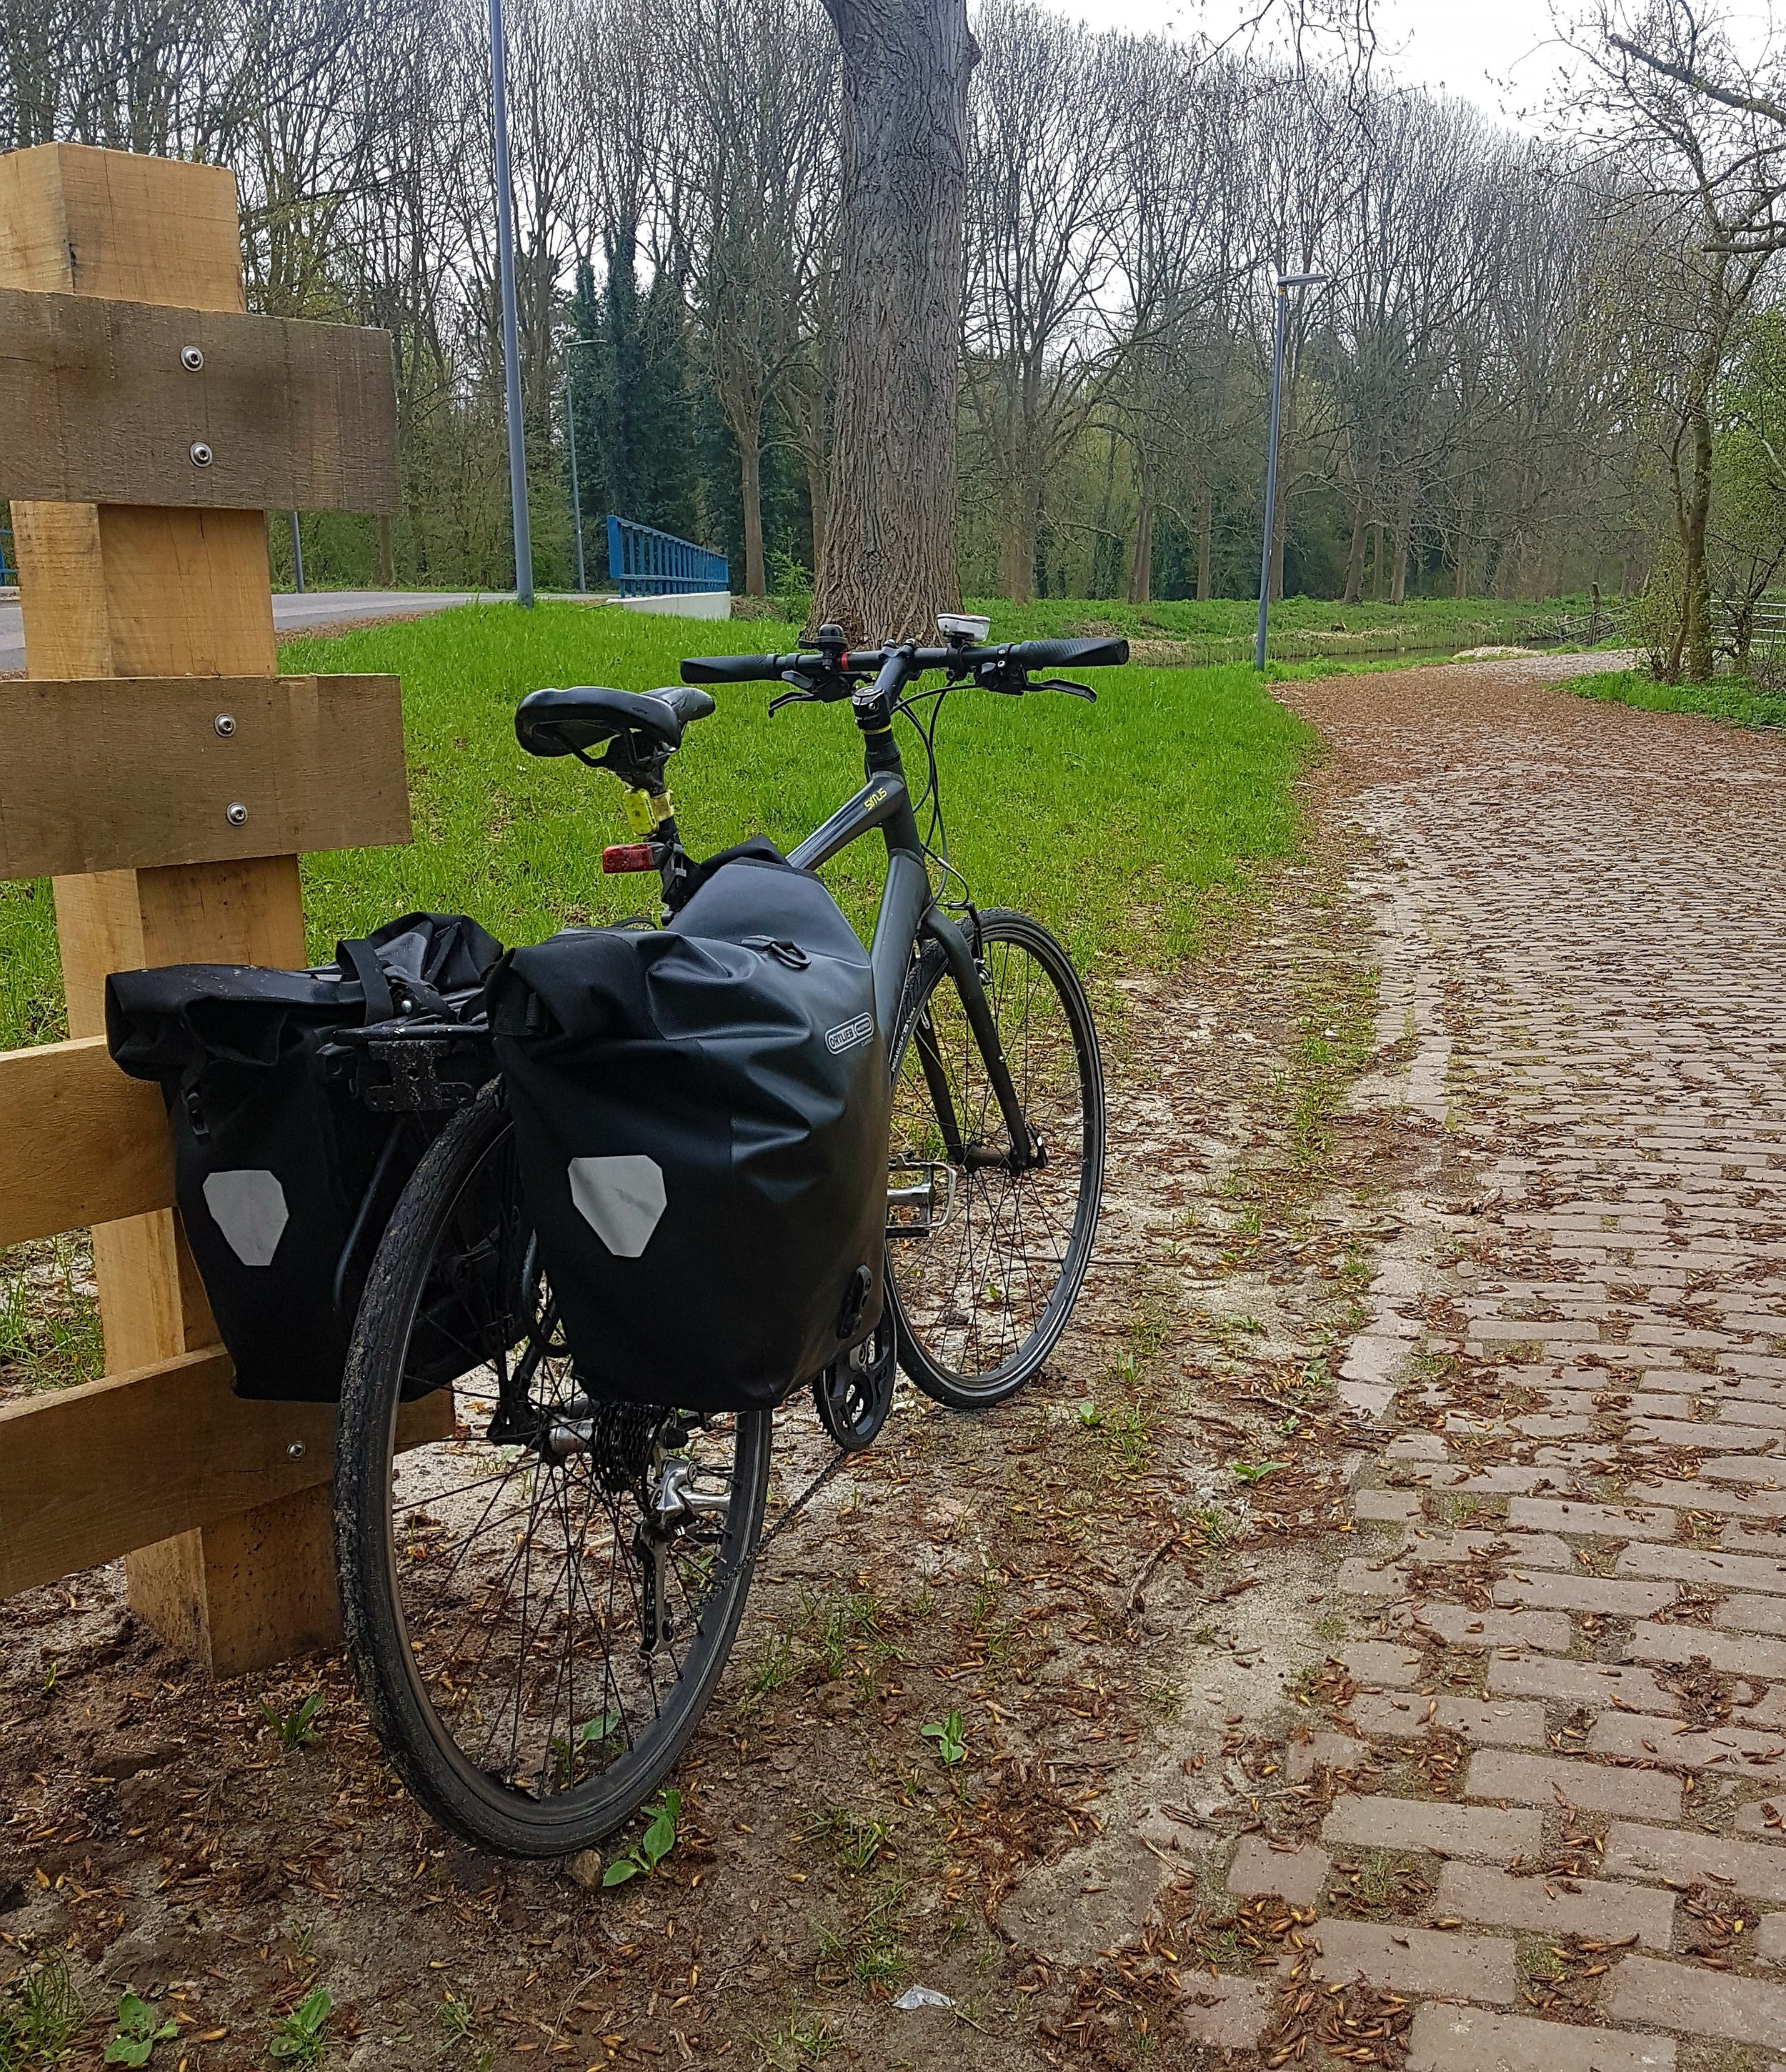 This pic shows my trusty mode of transport, laden with panniers, packed and ready for work.